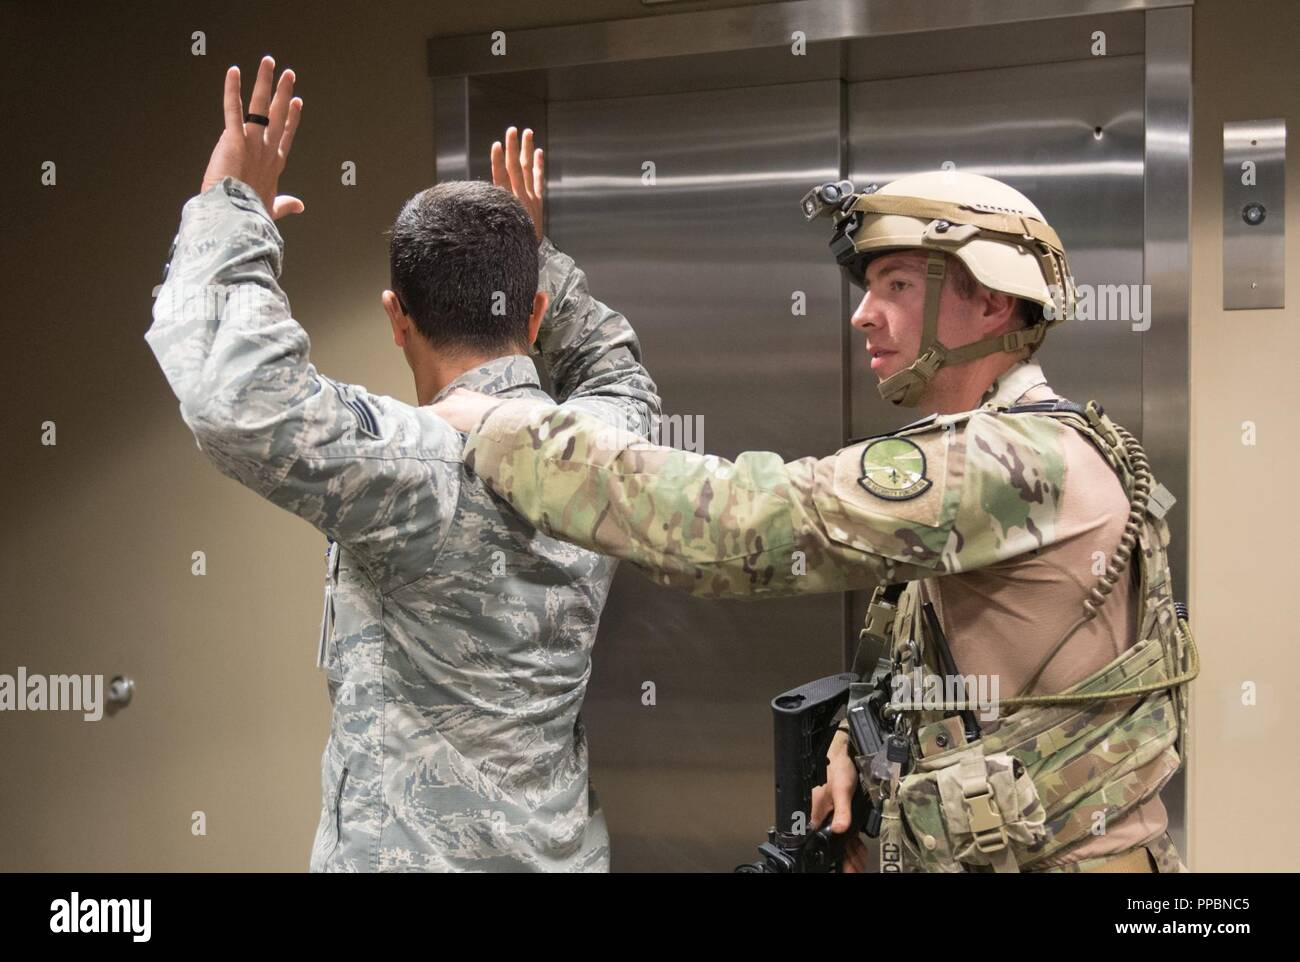 2nd Security Forces participate in an active shooter drill